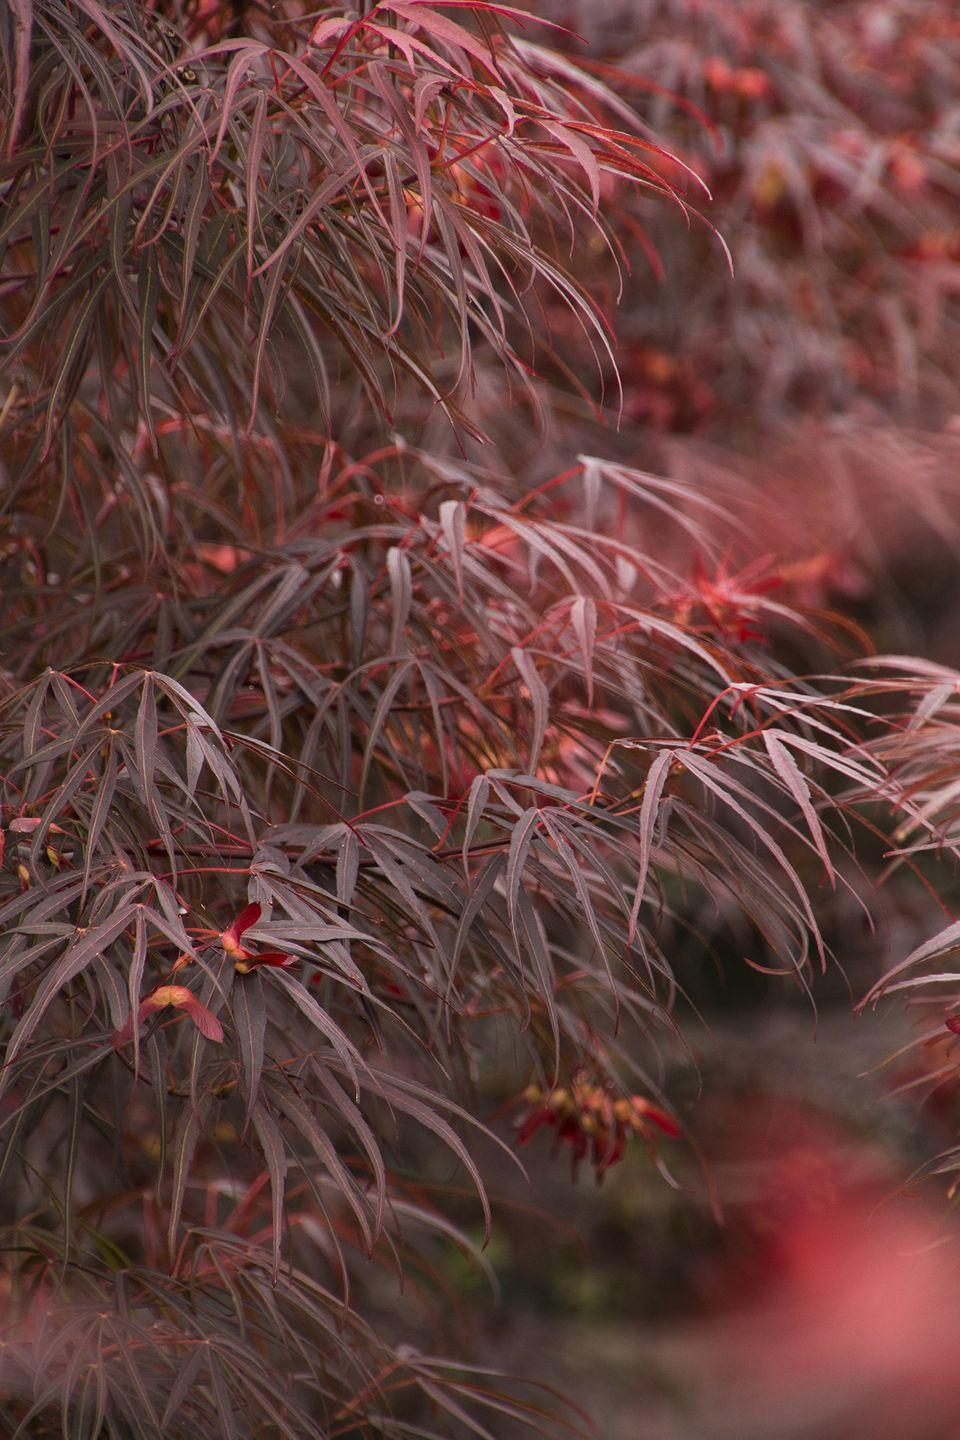 """<p><strong>Zones 5 – 9</strong></p><p><a class=""""link rapid-noclick-resp"""" href=""""https://www.monrovia.com/plant-catalog/plants/5555/ribbon-leaf-japanese-maple/"""" rel=""""nofollow noopener"""" target=""""_blank"""" data-ylk=""""slk:SHOP NOW"""">SHOP NOW</a></p><p>""""One of the best trees for a small space has to be a Japanese maple,"""" Karam says. """"The striking foliage, the graceful shape, the architecture of the branches in winter. It's a killer!"""" This particular variety features textured leaves that start red in spring, go bronze in summer, and then turn brilliant orange in fall. Full to partial sun spots in cooler climates and dappled or afternoon shade in extremely hot areas work best. Expect to see this showstopper grow up to <strong>12 feet tall and wide</strong>. </p>"""